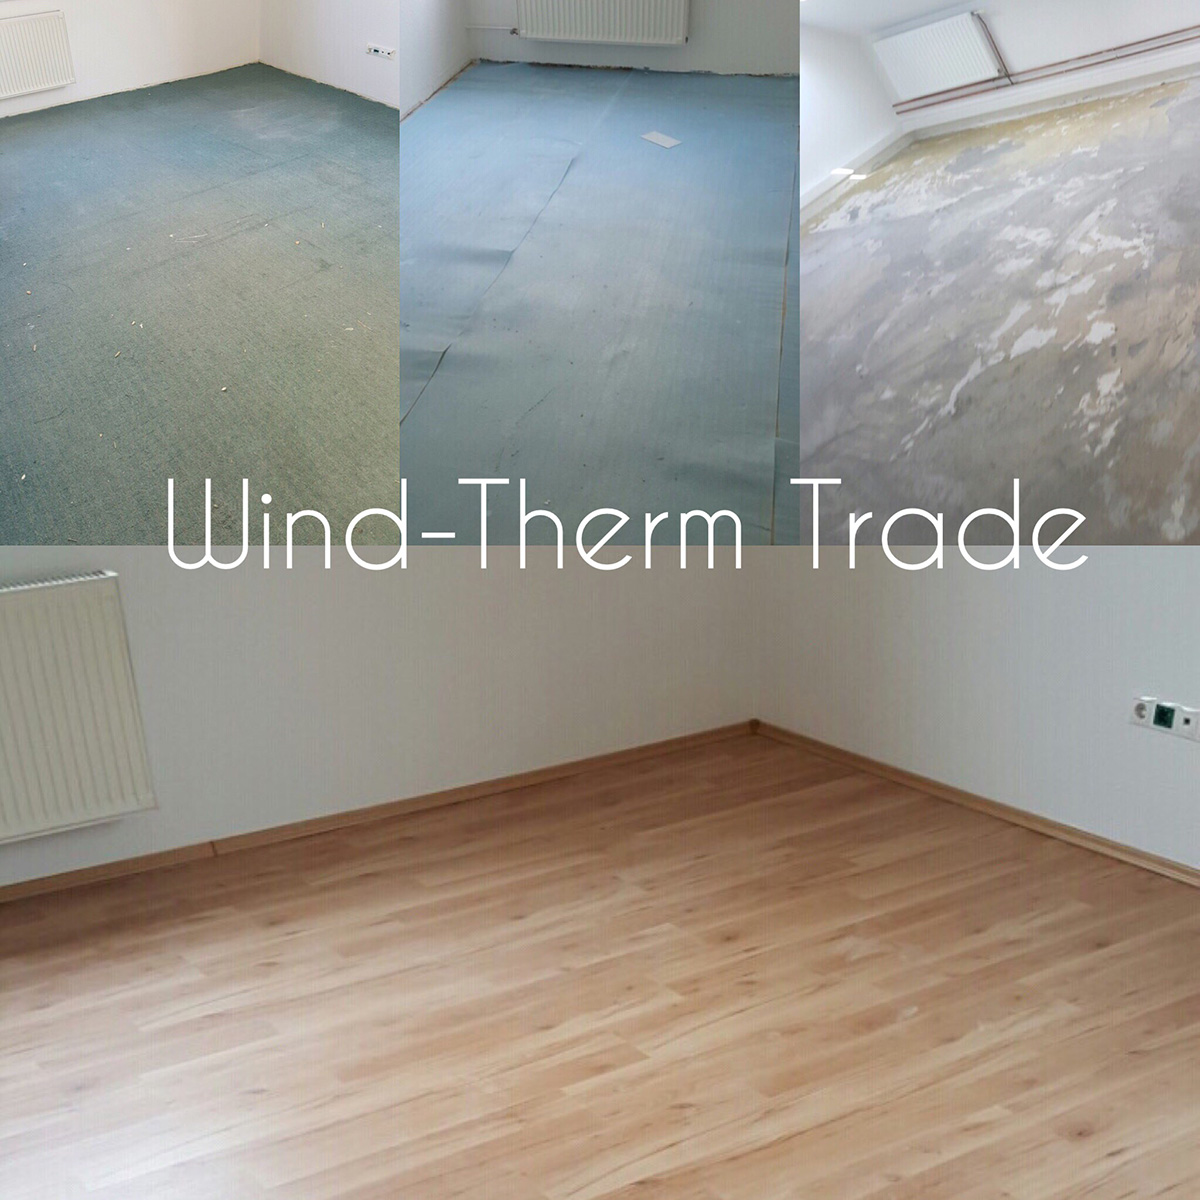 Wind-Therm Trade Kft.